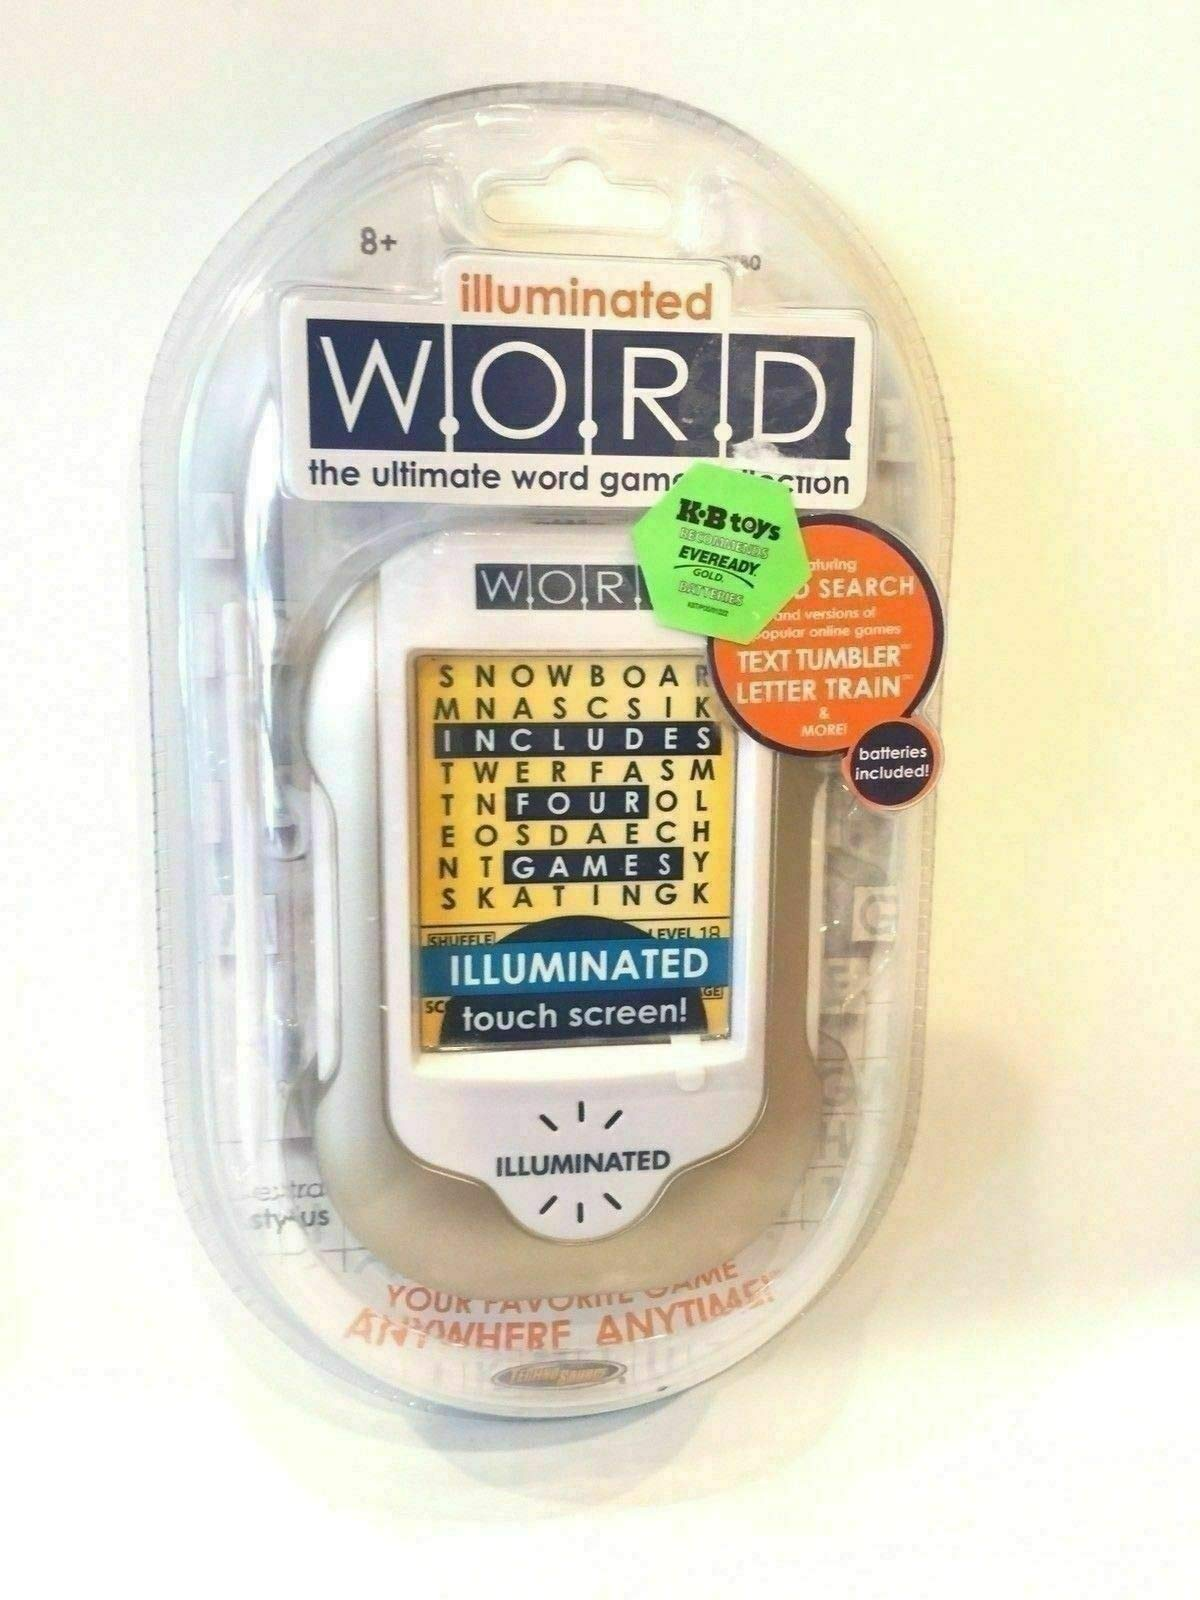 Illuminated Word The Ultimate Word Game Collection Rare Pocket Travel Stylus NEW by Generic (Image #1)